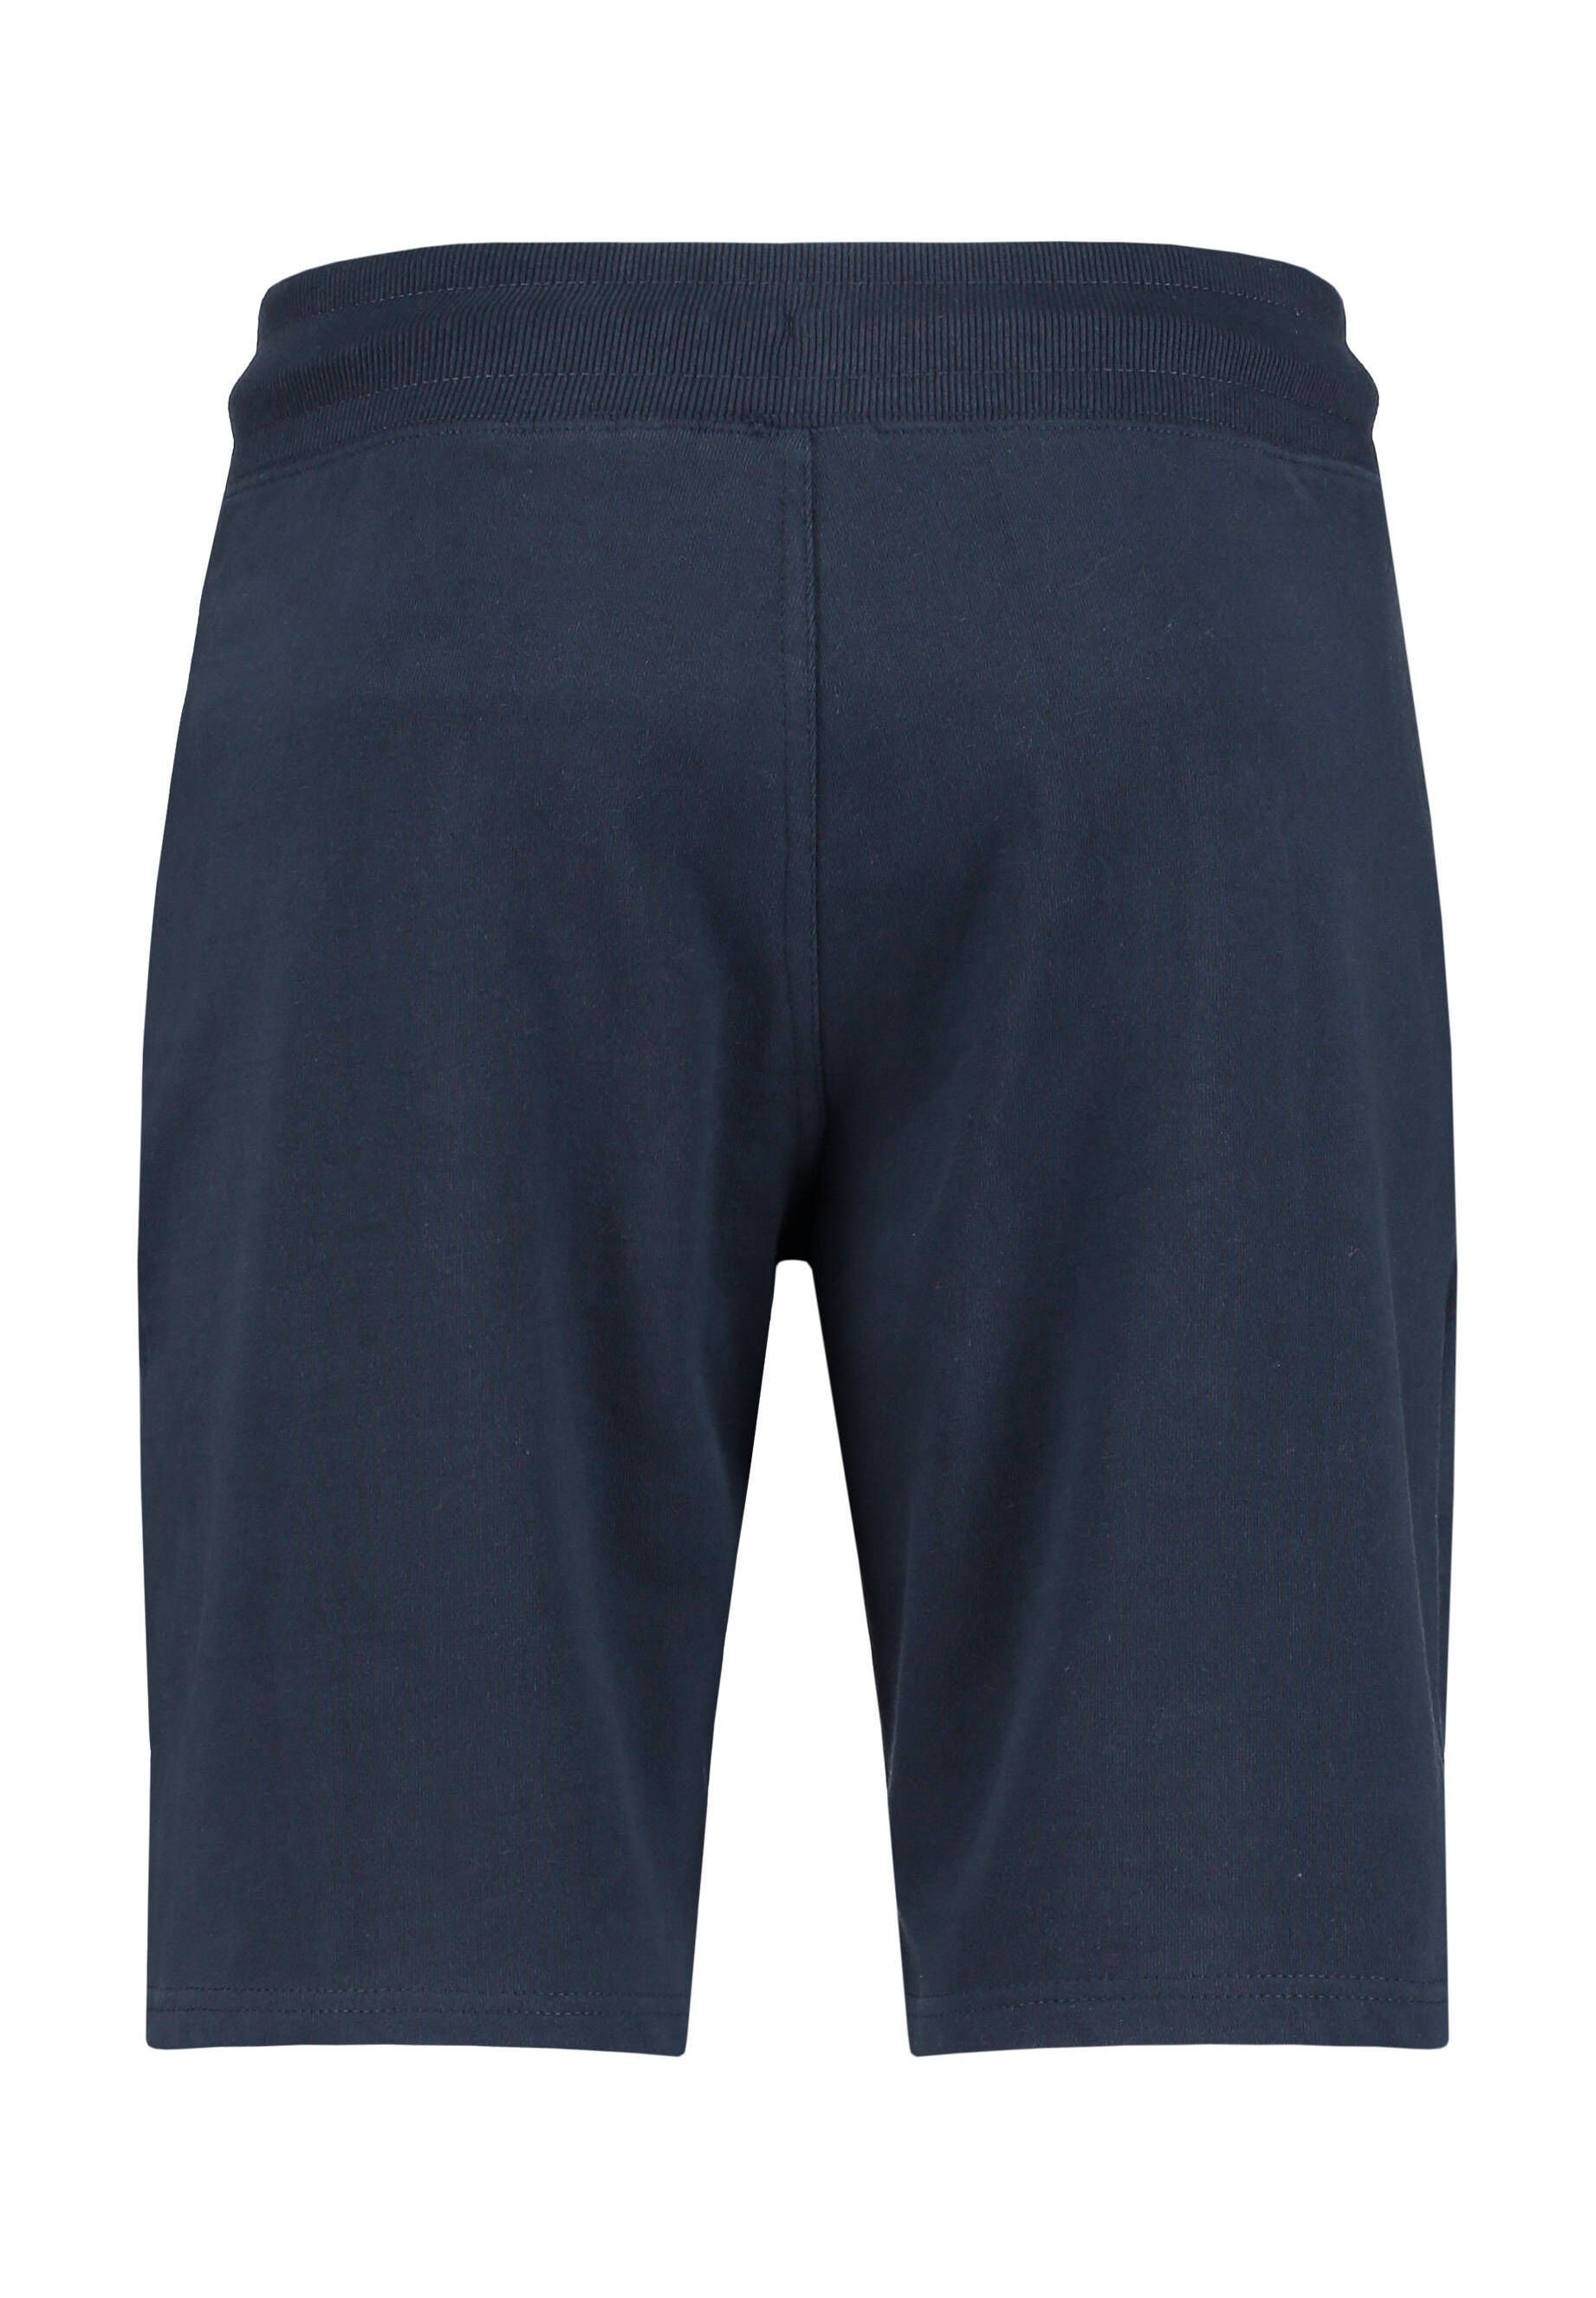 Superdry COLLECTIVE SHORT - Szorty - marine (52)